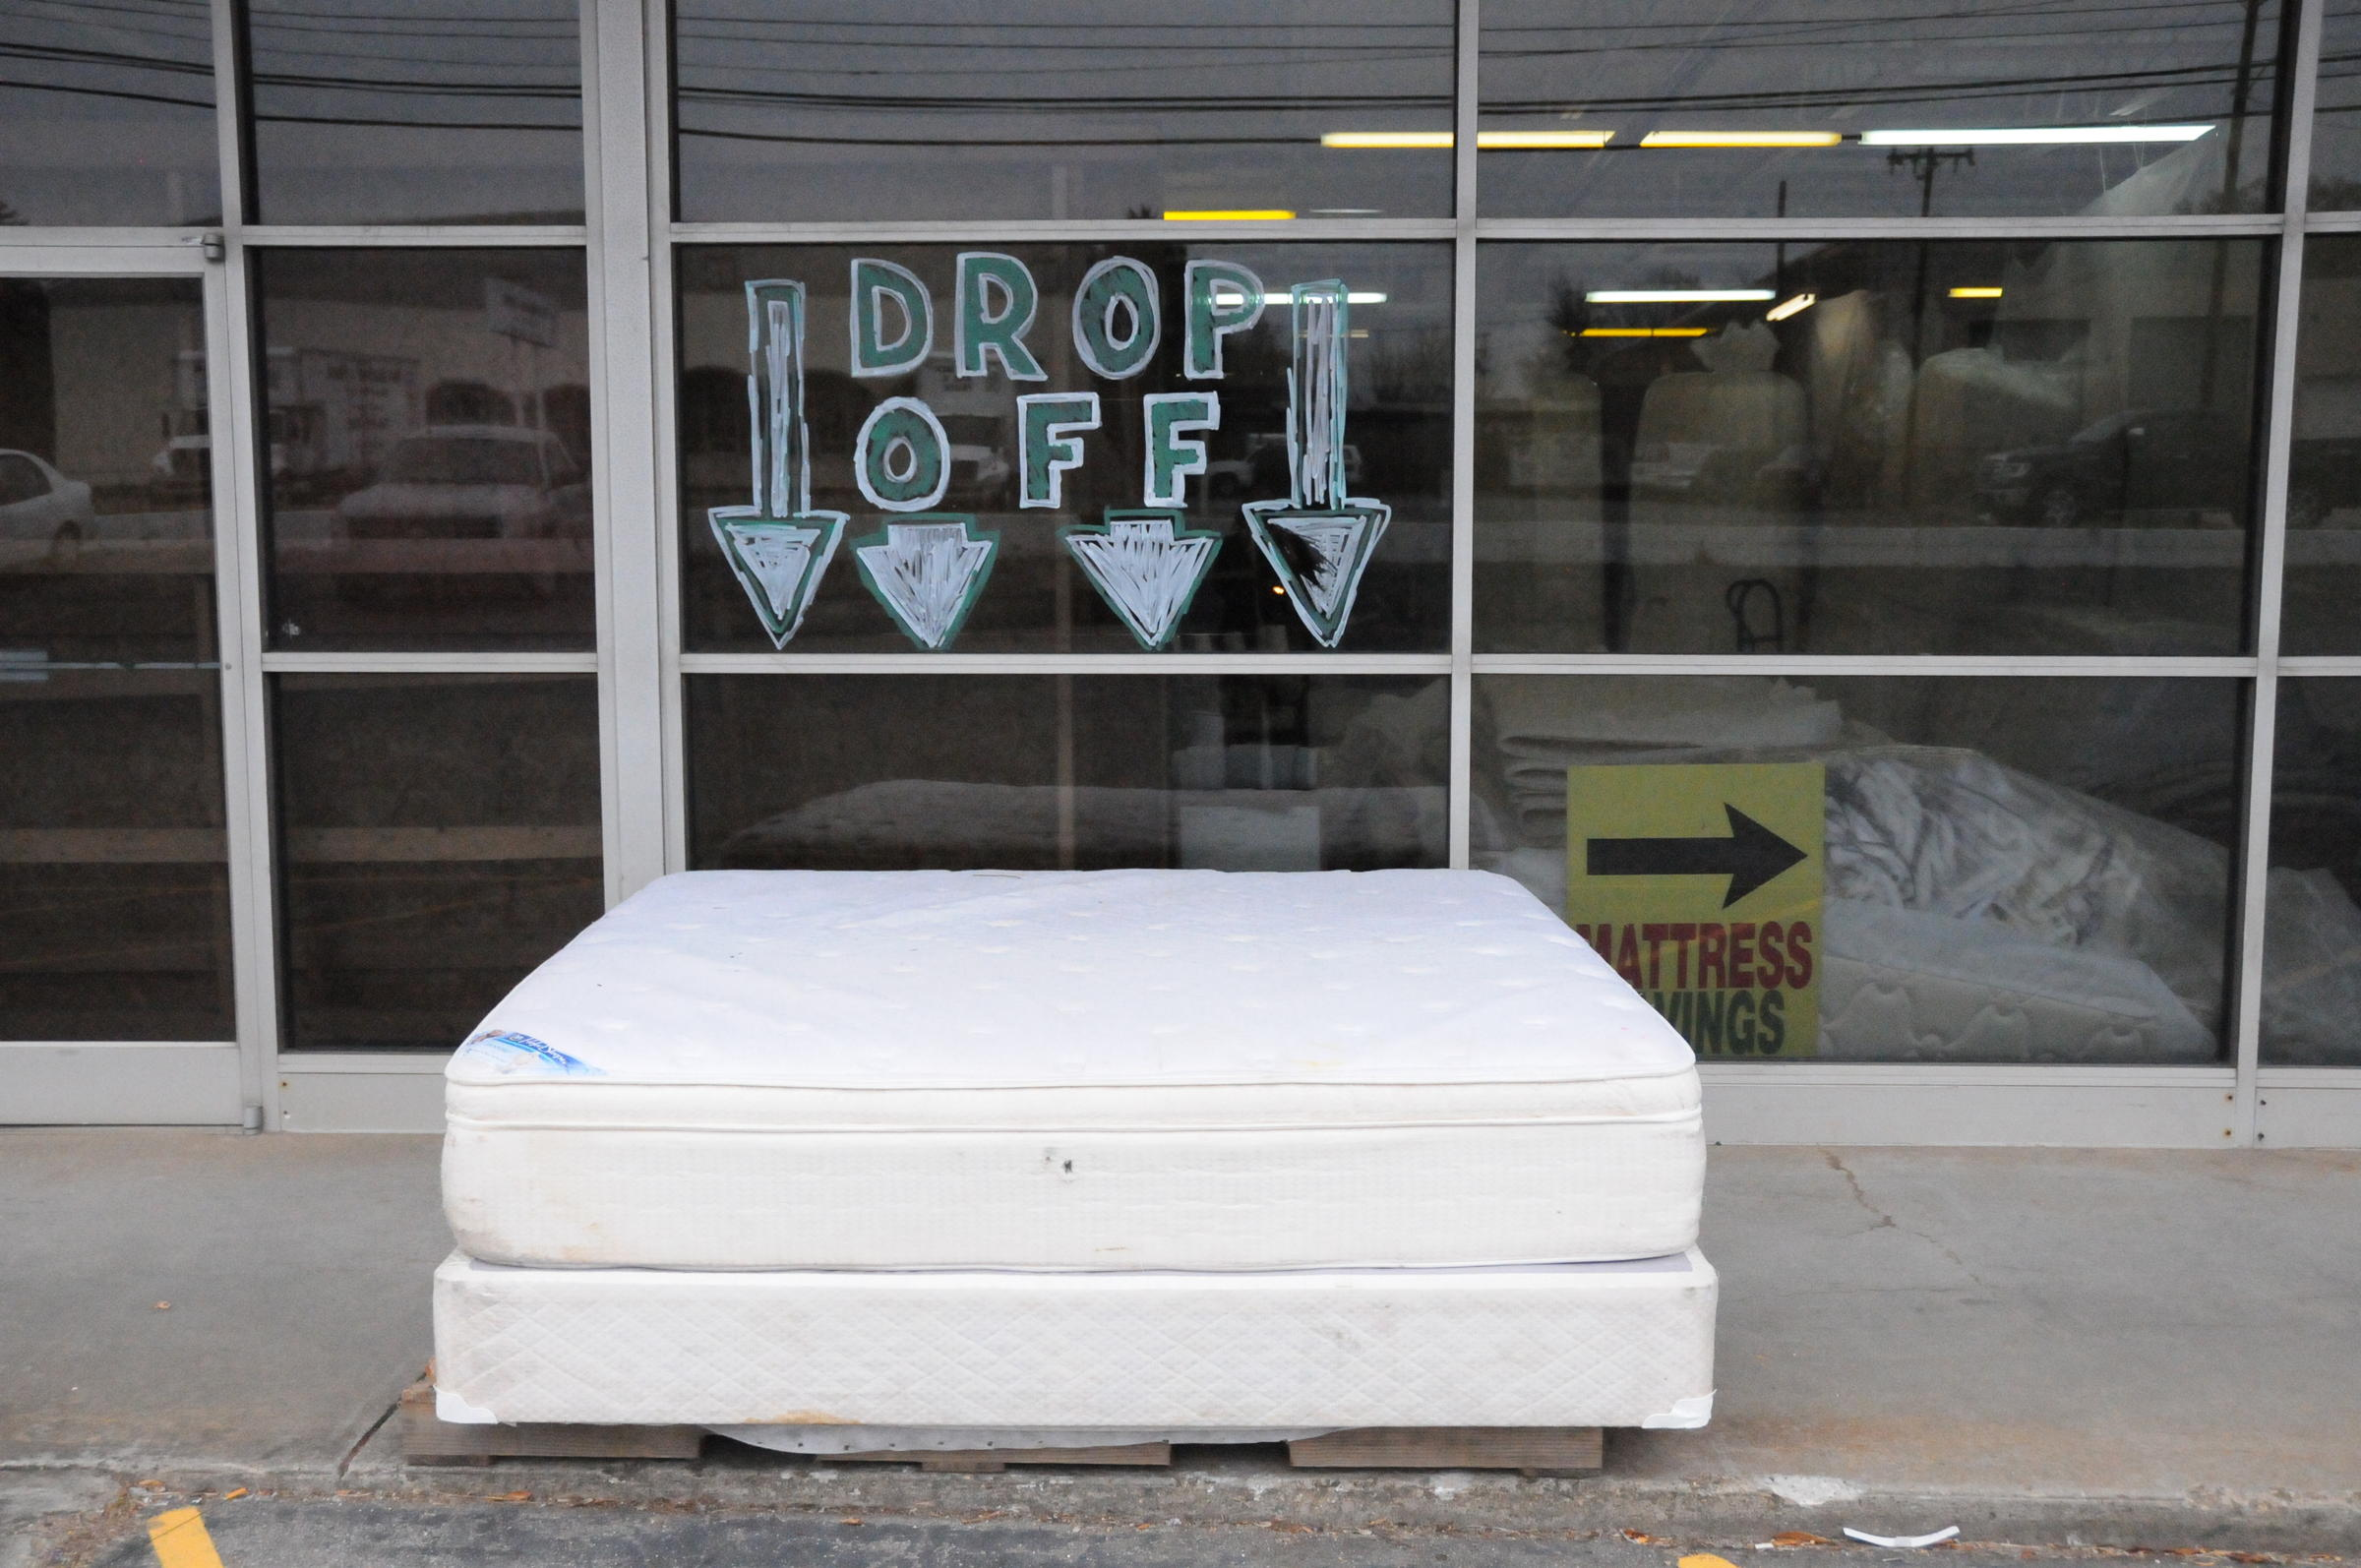 mattress recycling. Purpose Recycling Is Paid To Receive Discarded Mattresses At Its Greenboro Warehouse. The Company Strips Off Materials And Resells Them. Mattress